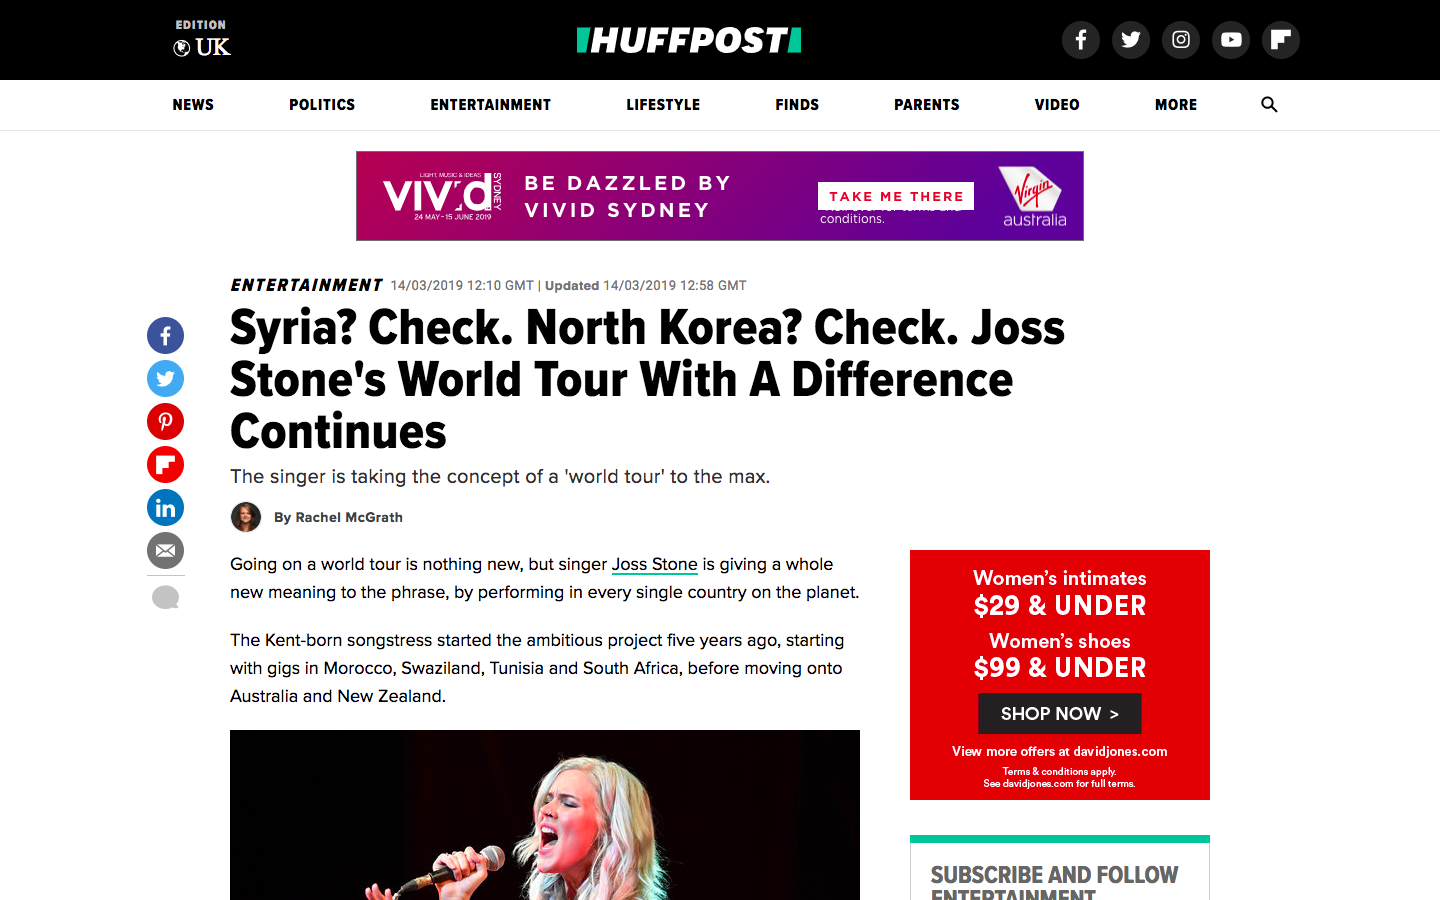 The webpage of HuffPost UK